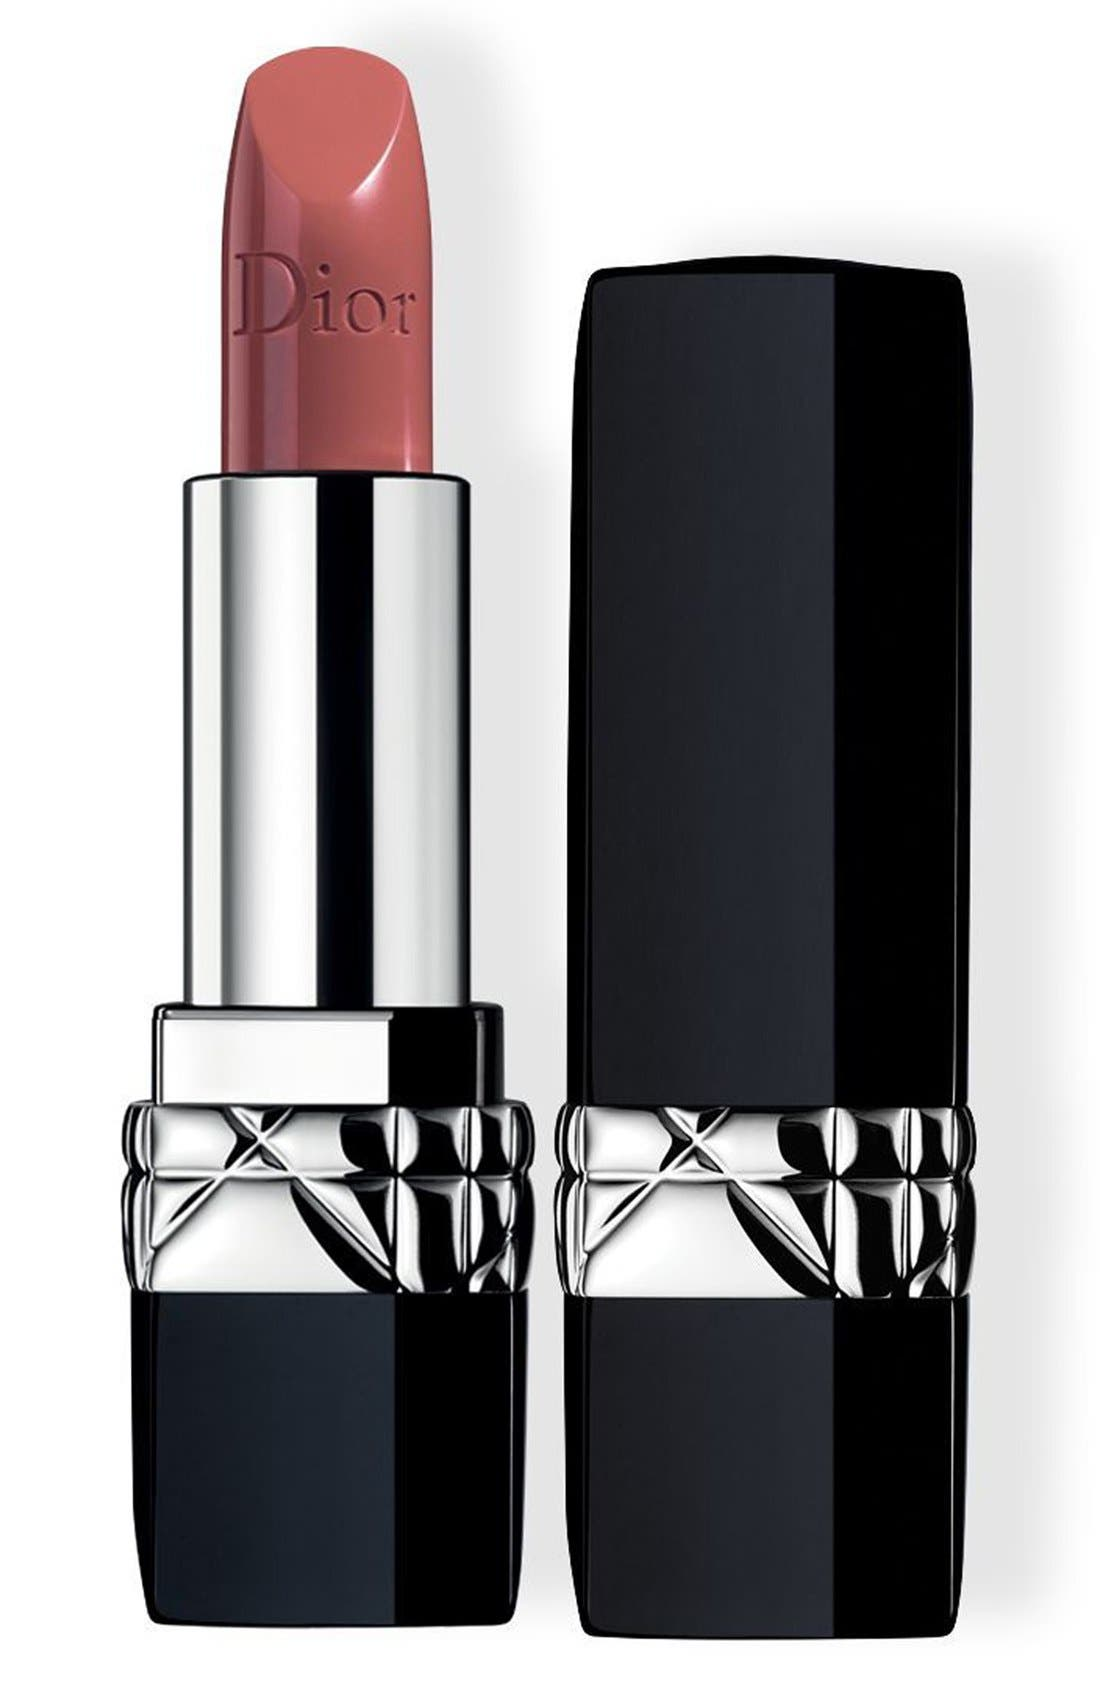 Dior Couture Color Rouge Dior Lipstick - 414 Saint Germain